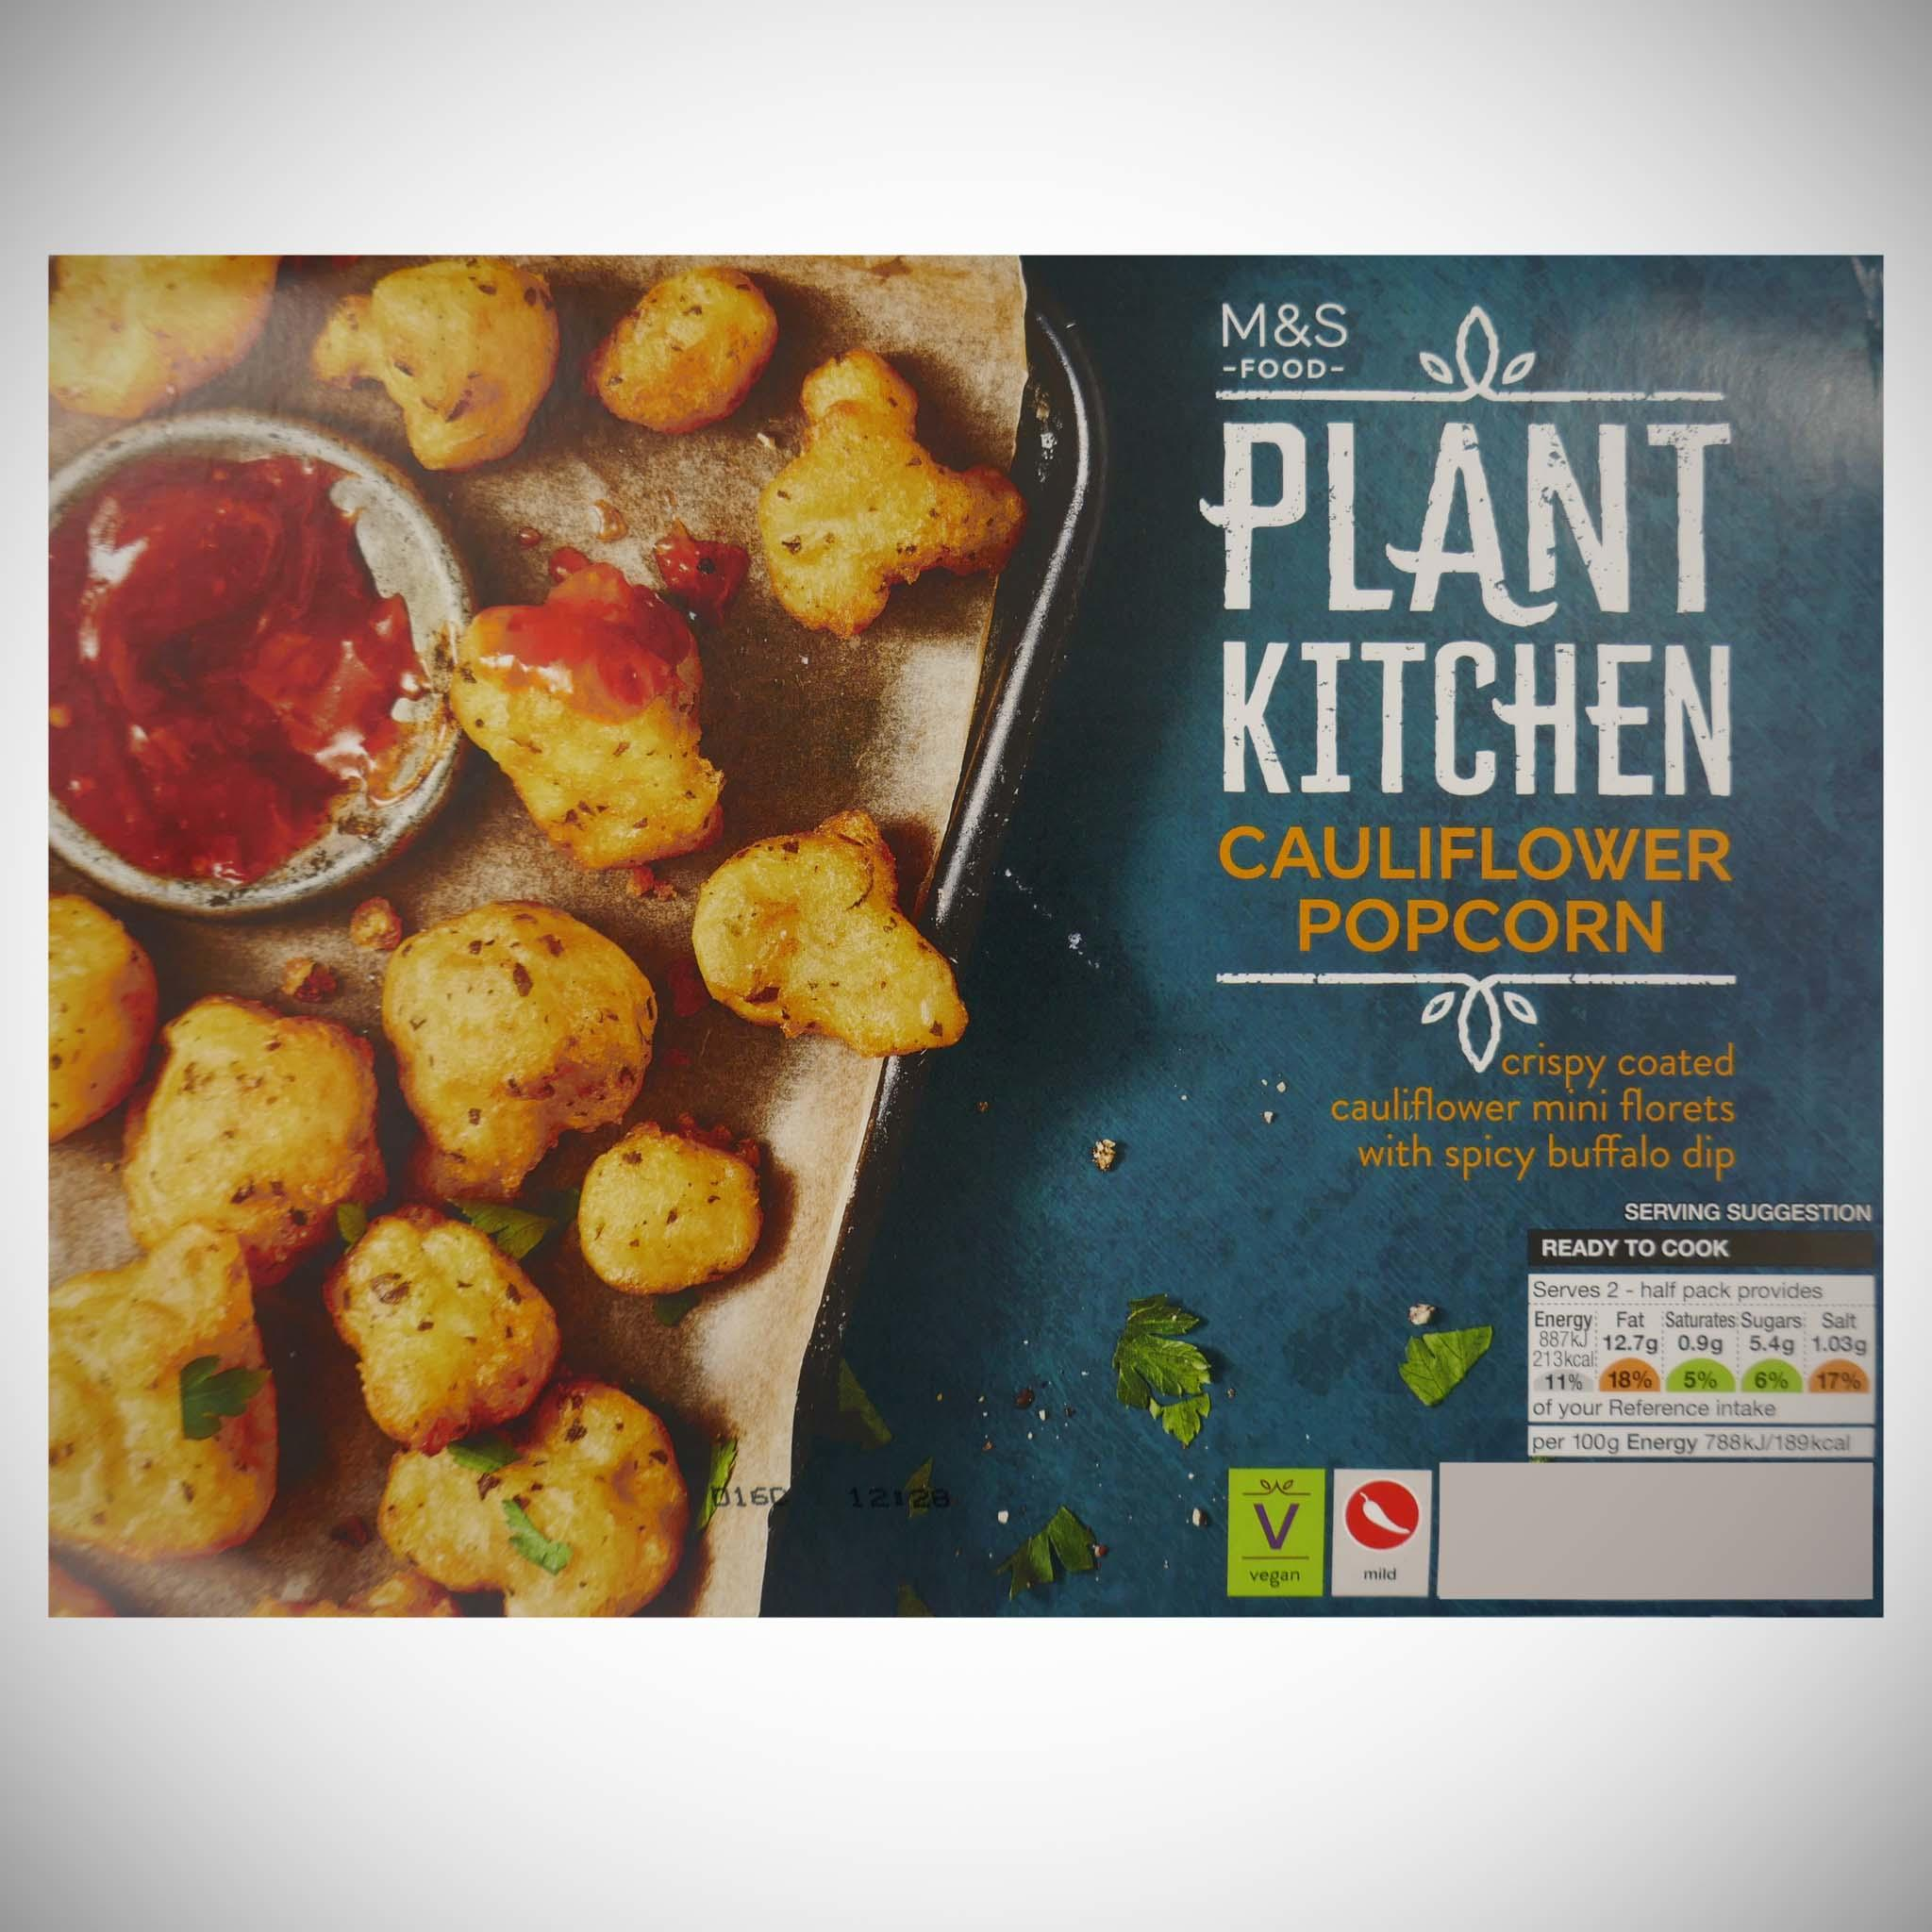 Plant Kitchen Cauliflower Popcorn